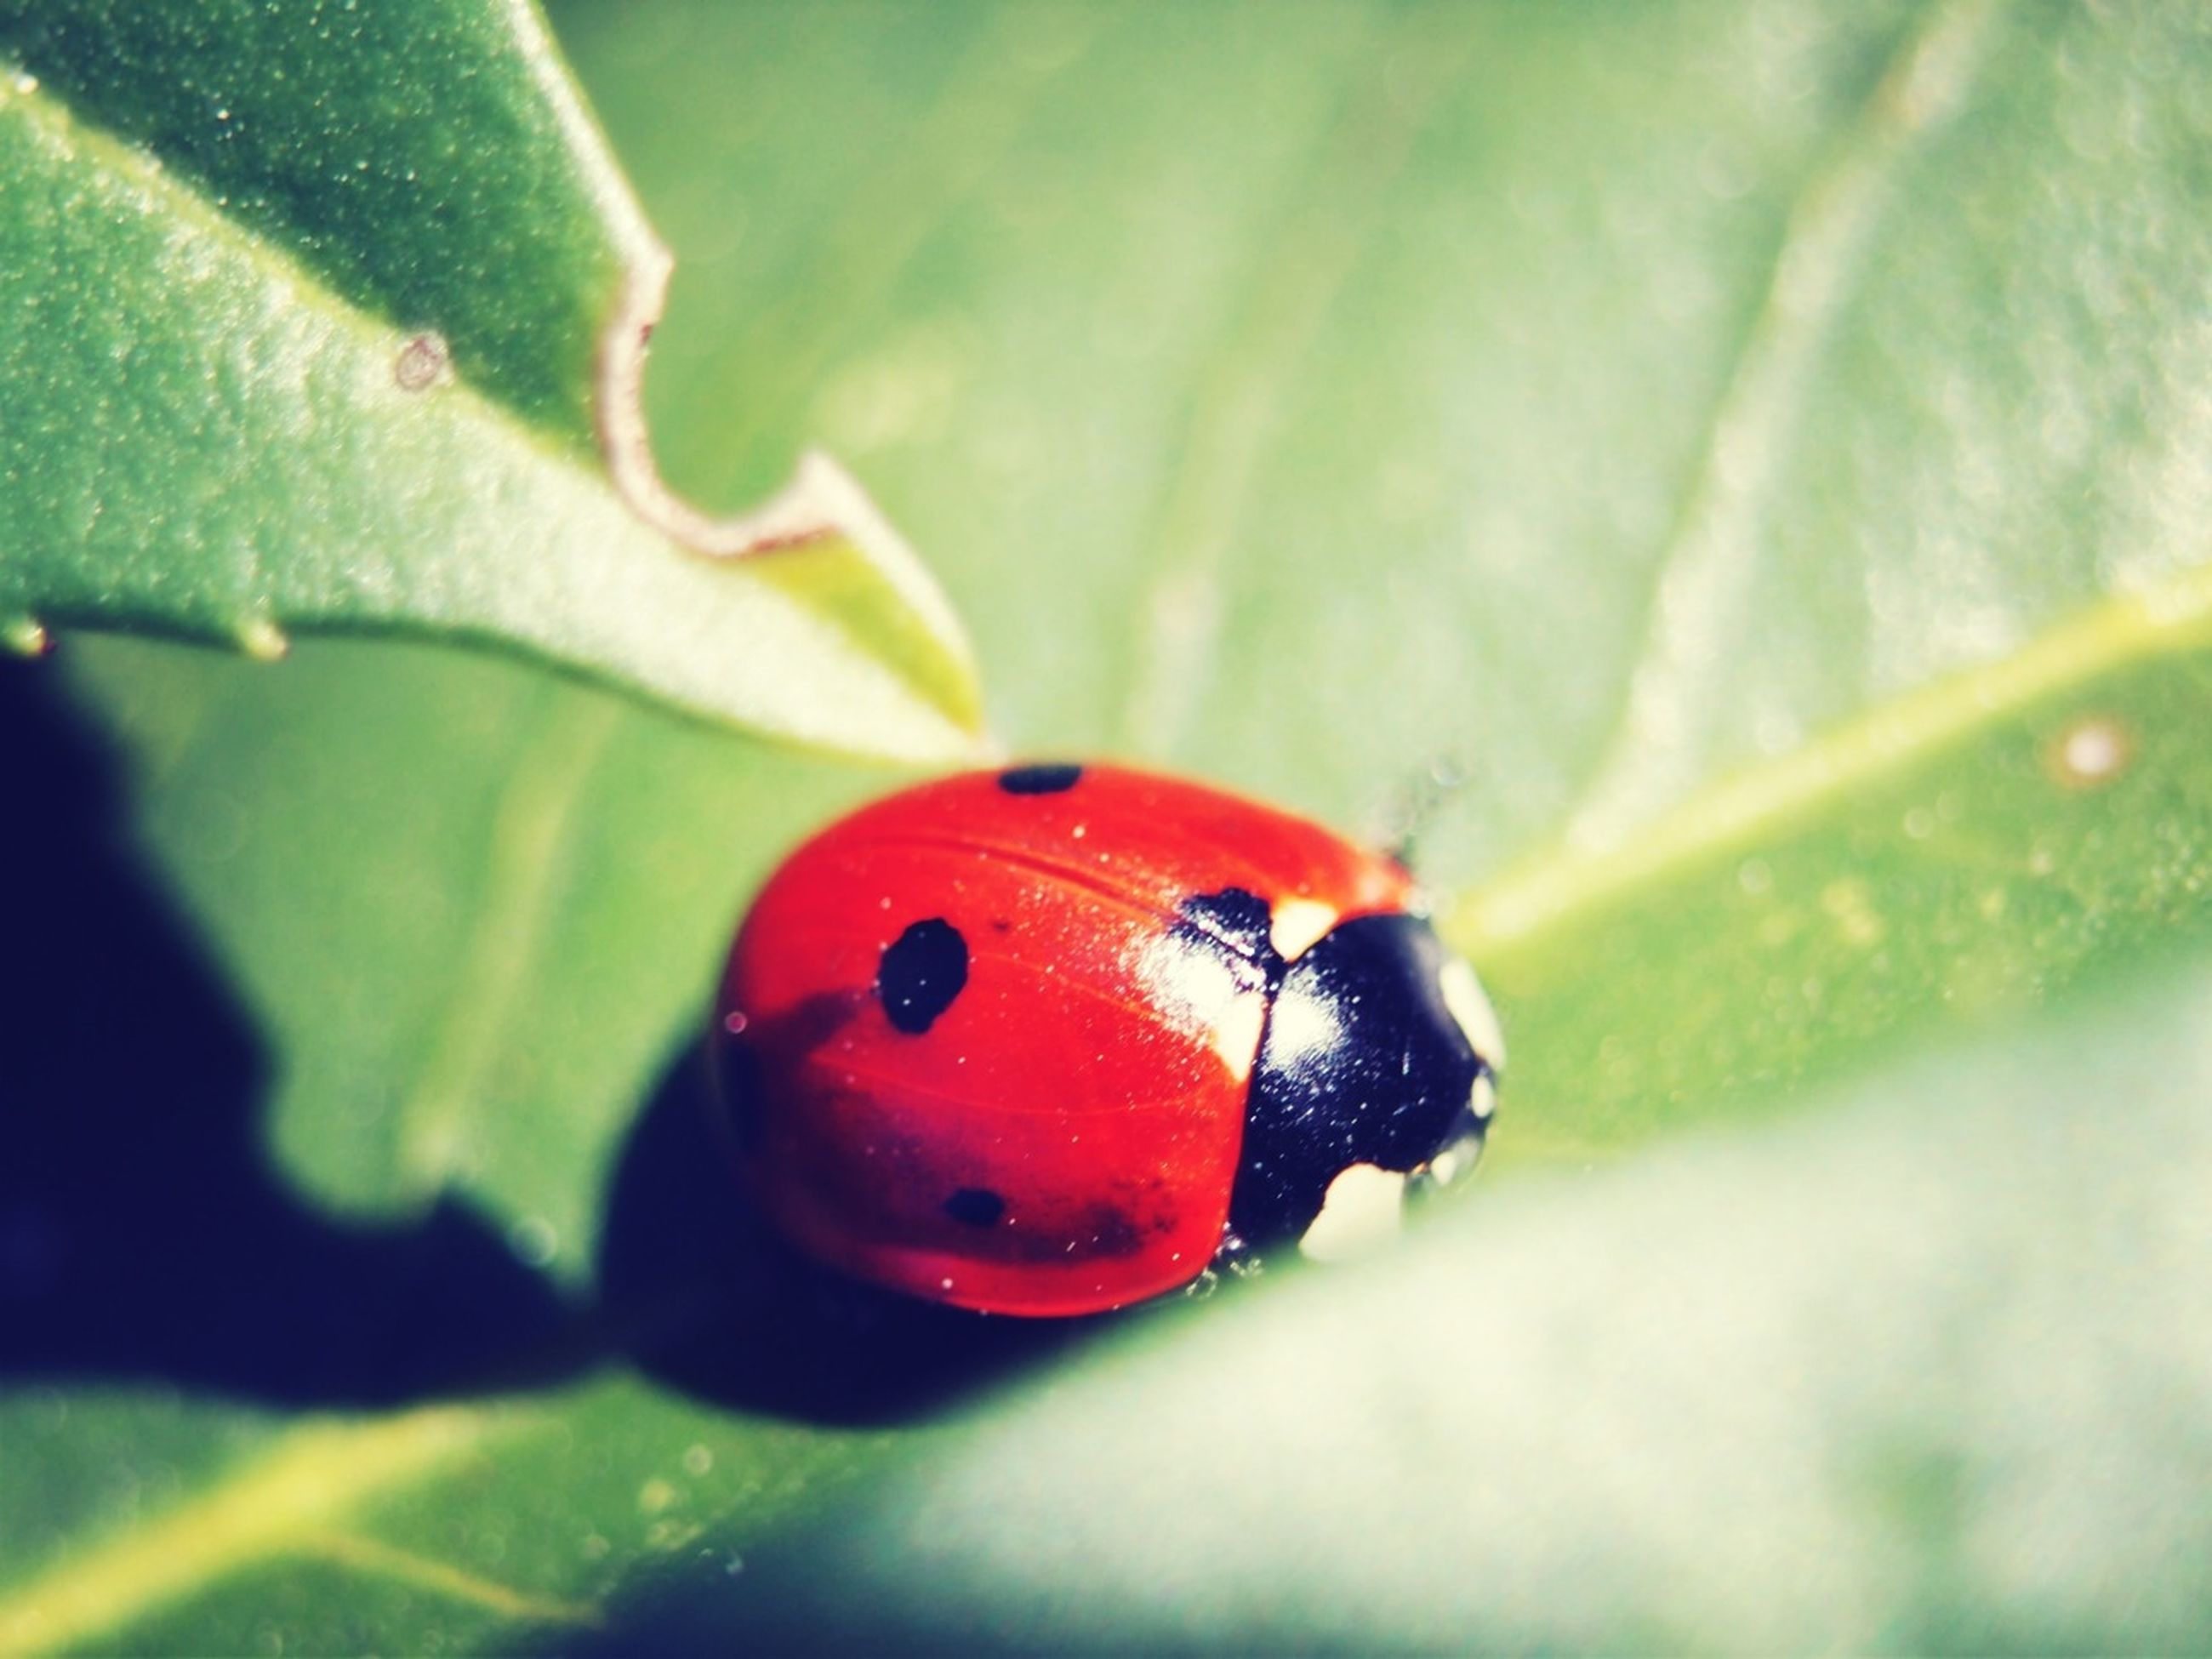 red, insect, ladybug, animal themes, one animal, animals in the wild, leaf, close-up, wildlife, green color, focus on foreground, selective focus, nature, fruit, spotted, plant, day, growth, no people, beauty in nature